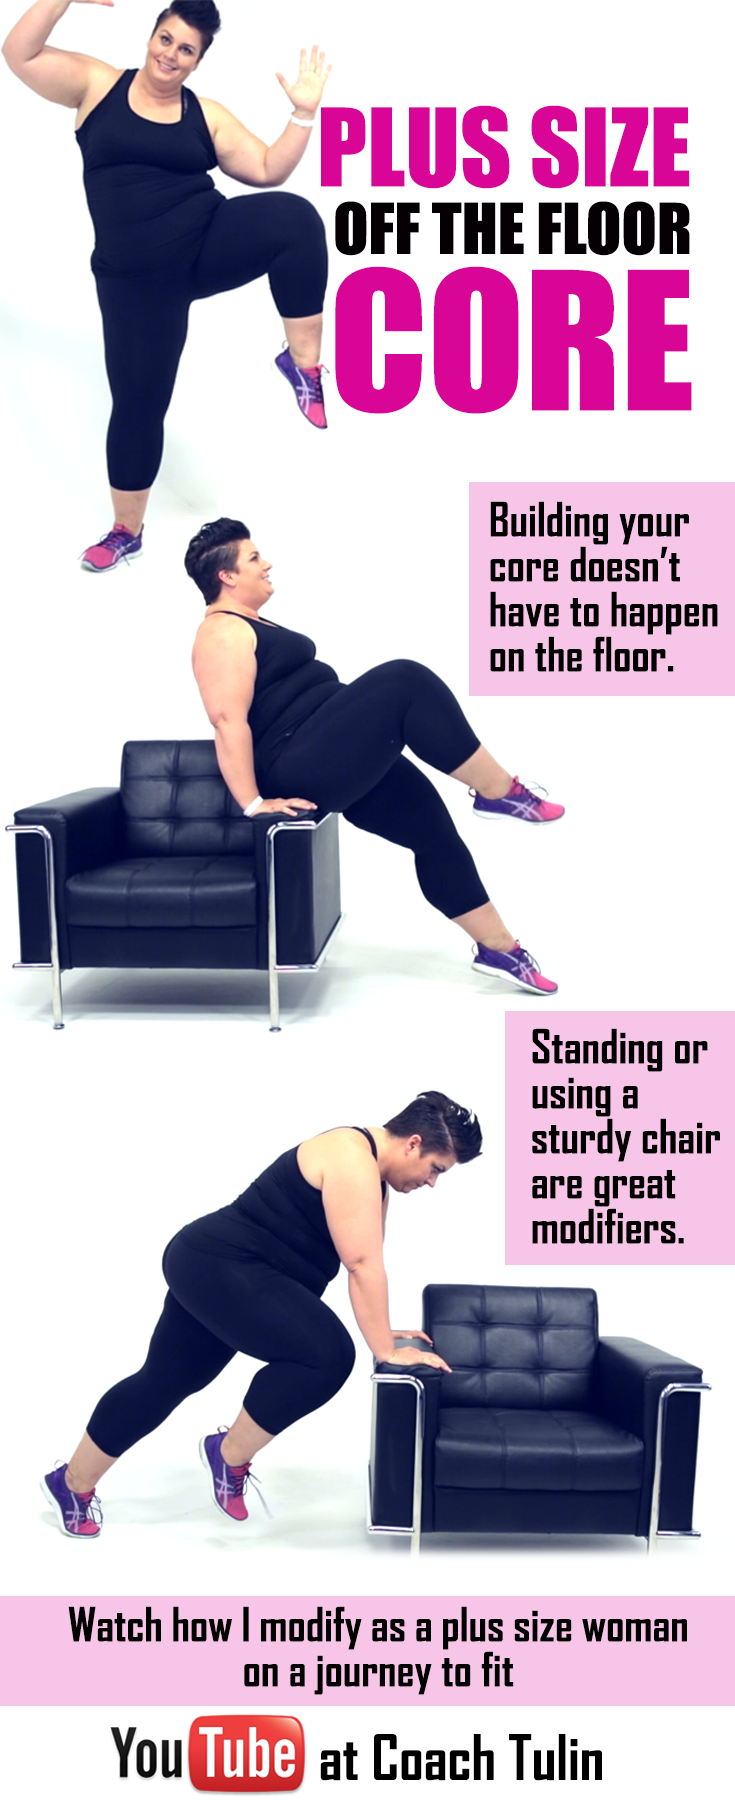 plus size core exercises that does not require getting up and down